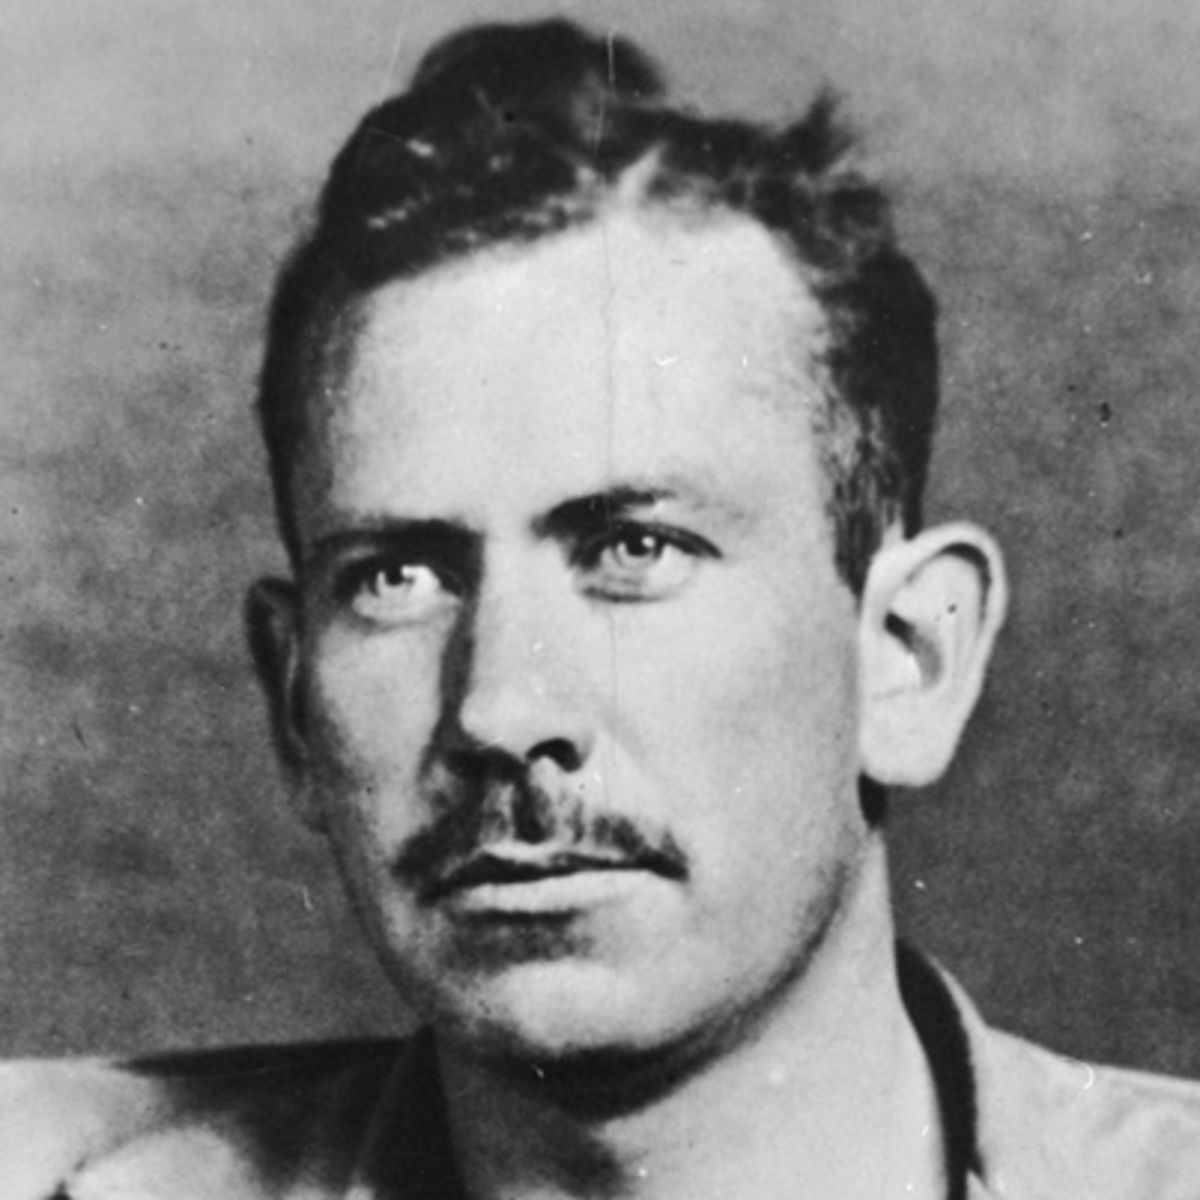 portrait of Steinbeck